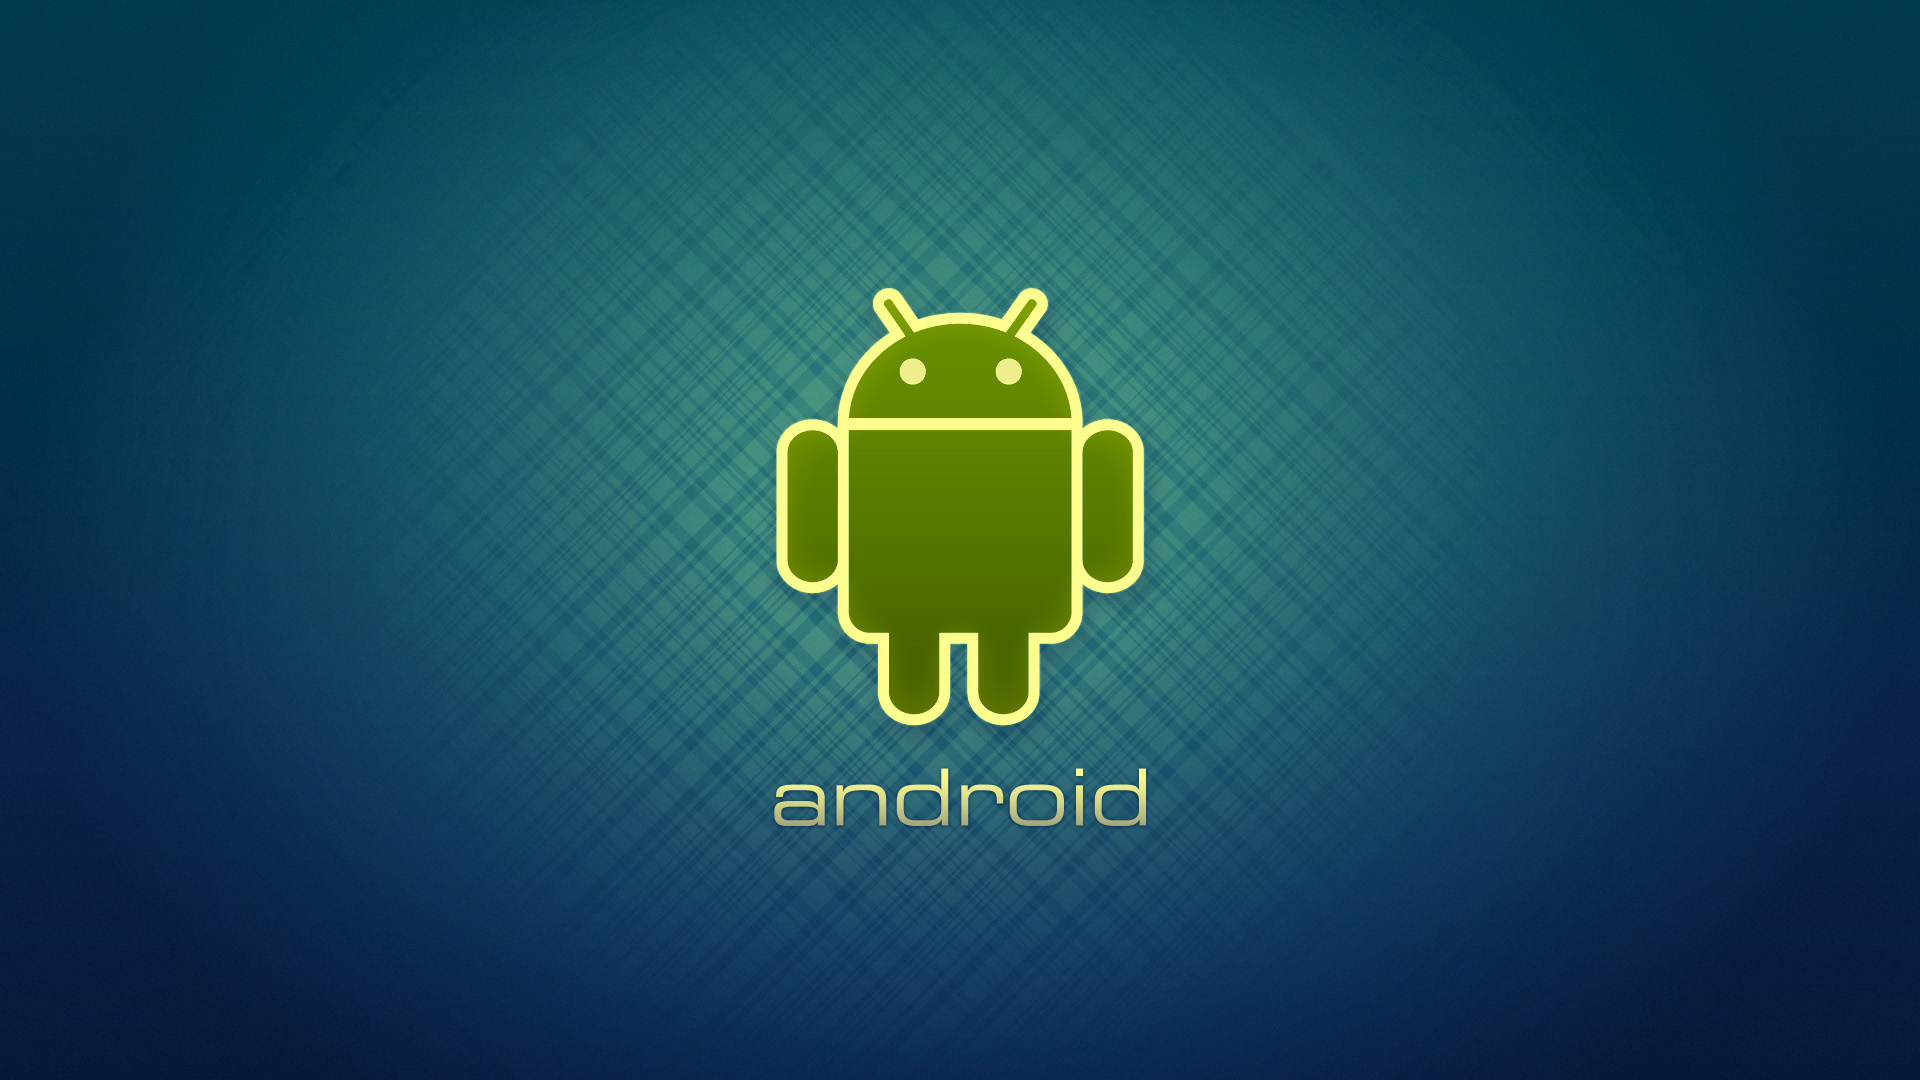 Google android wallpaper for Wallpaper home android